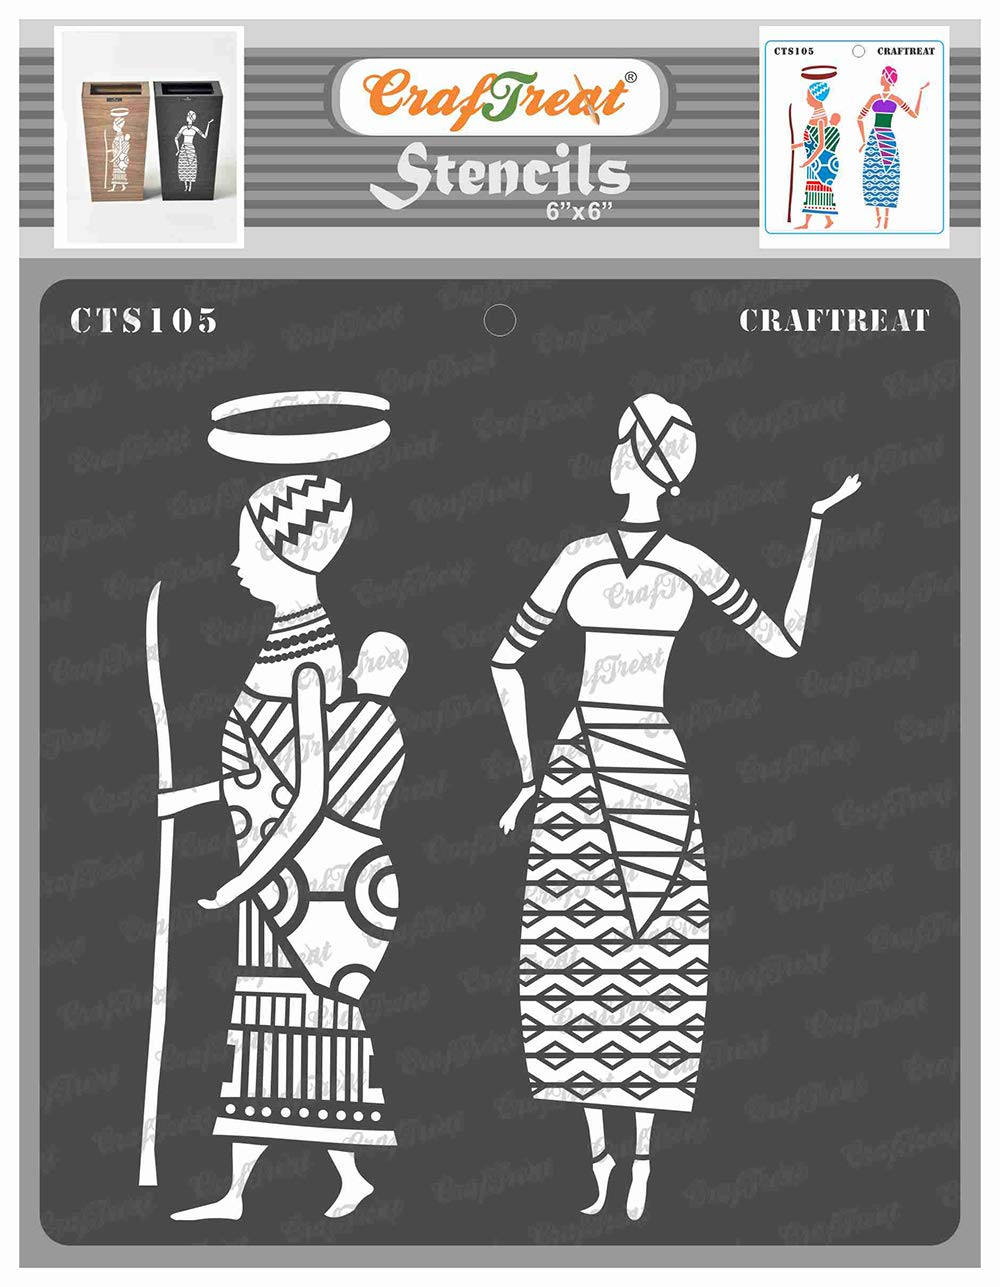 CrafTreat Tribal Stencils for Painting on Wood, Wall, Tile, Canvas, Paper, Fabric and Floor - Tribal Errands - 6x6 Inches - Reusable DIY Art and Craft Stencils - African Girls Stencil